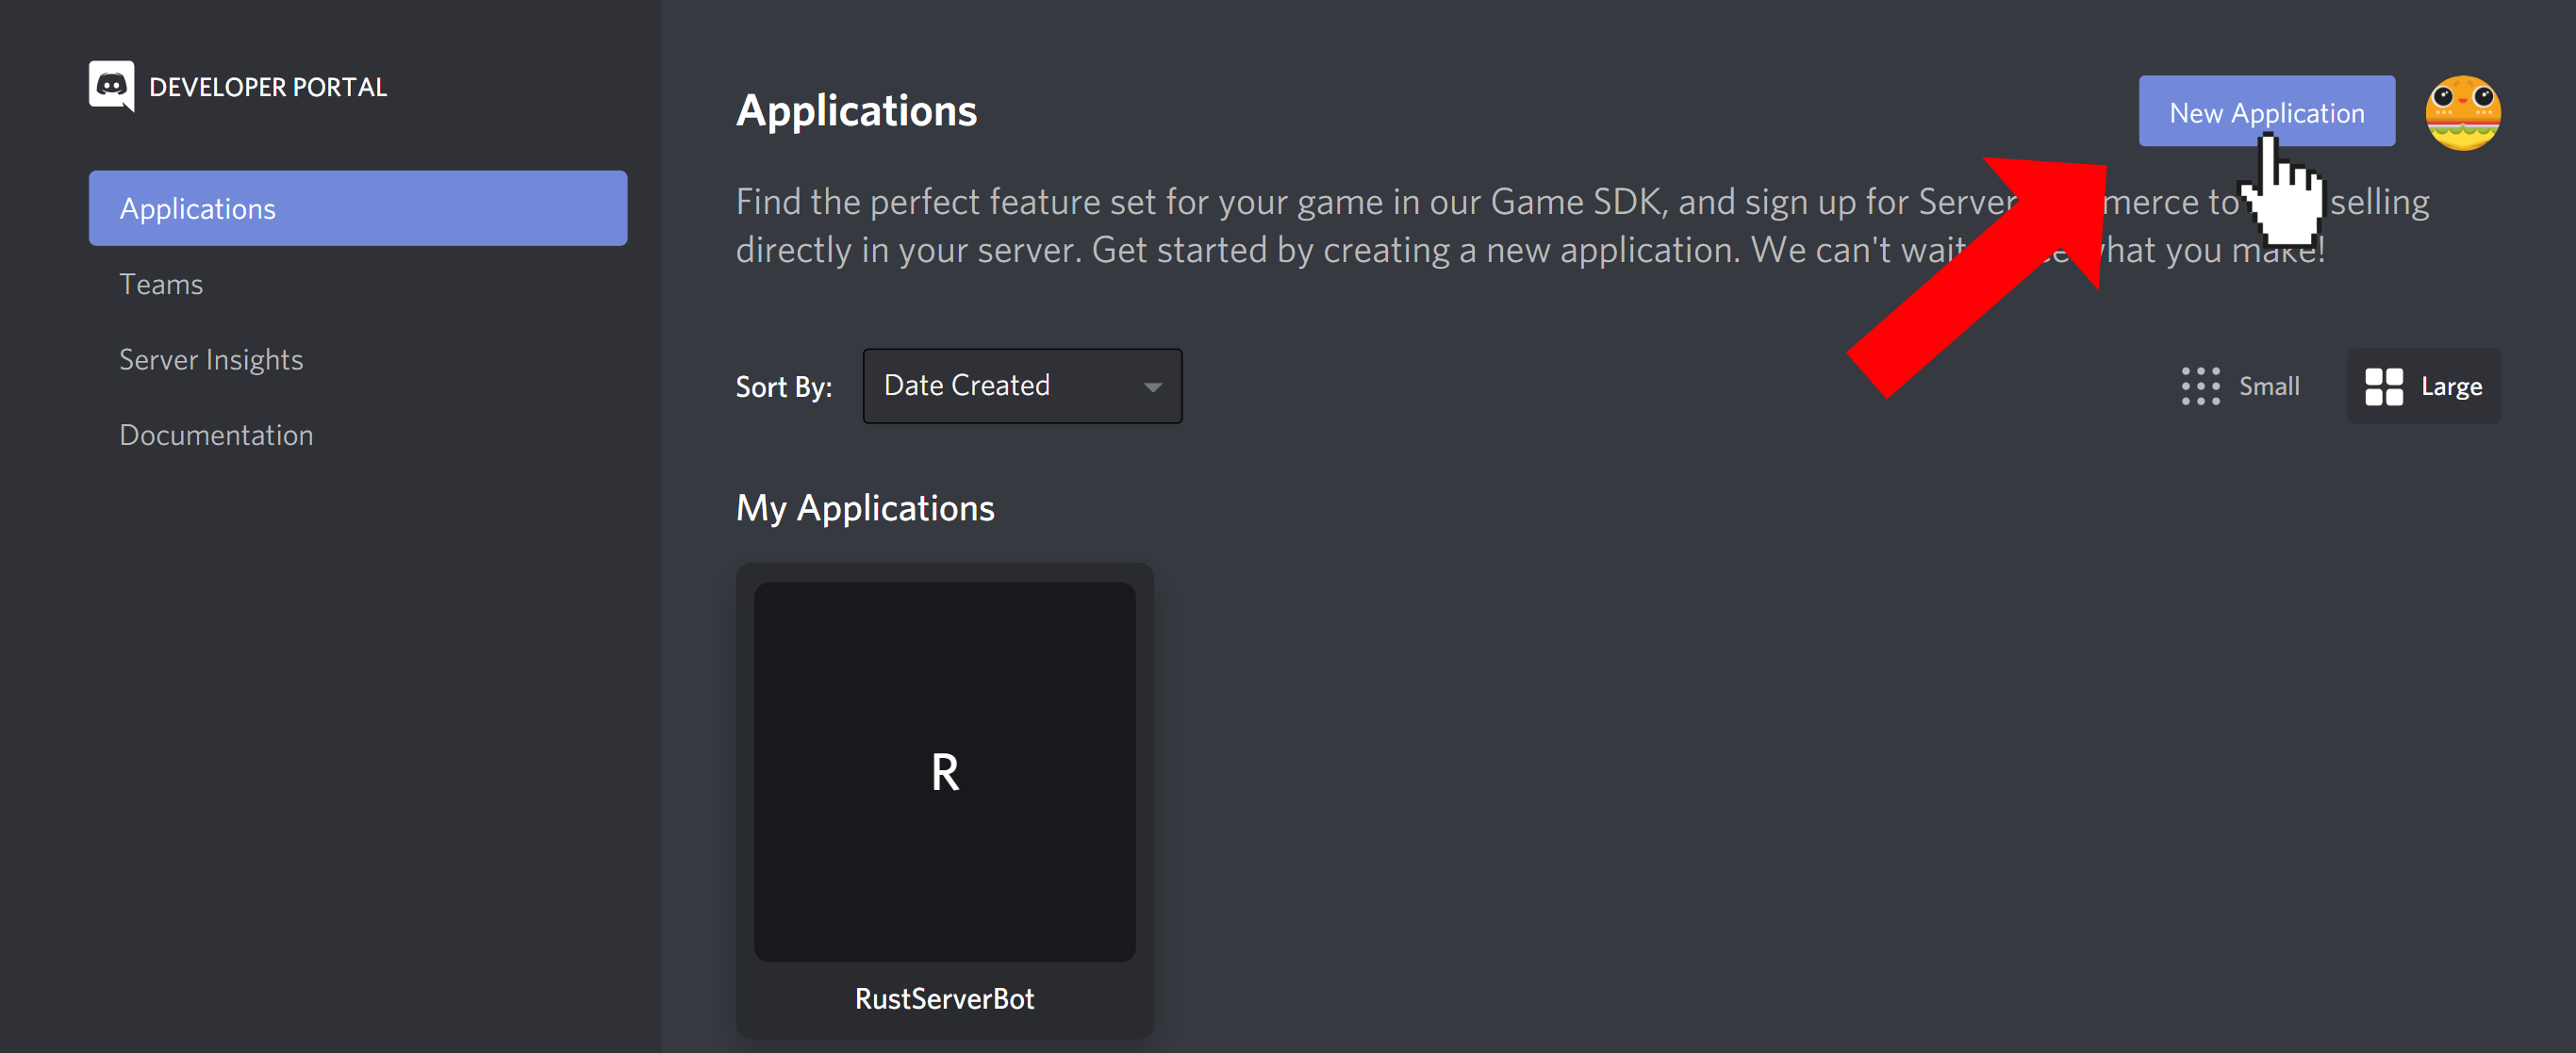 """Discord Developer Portal applications screen. Every application is listed as a tile. The cursor is clicking the """"New Application"""" button"""